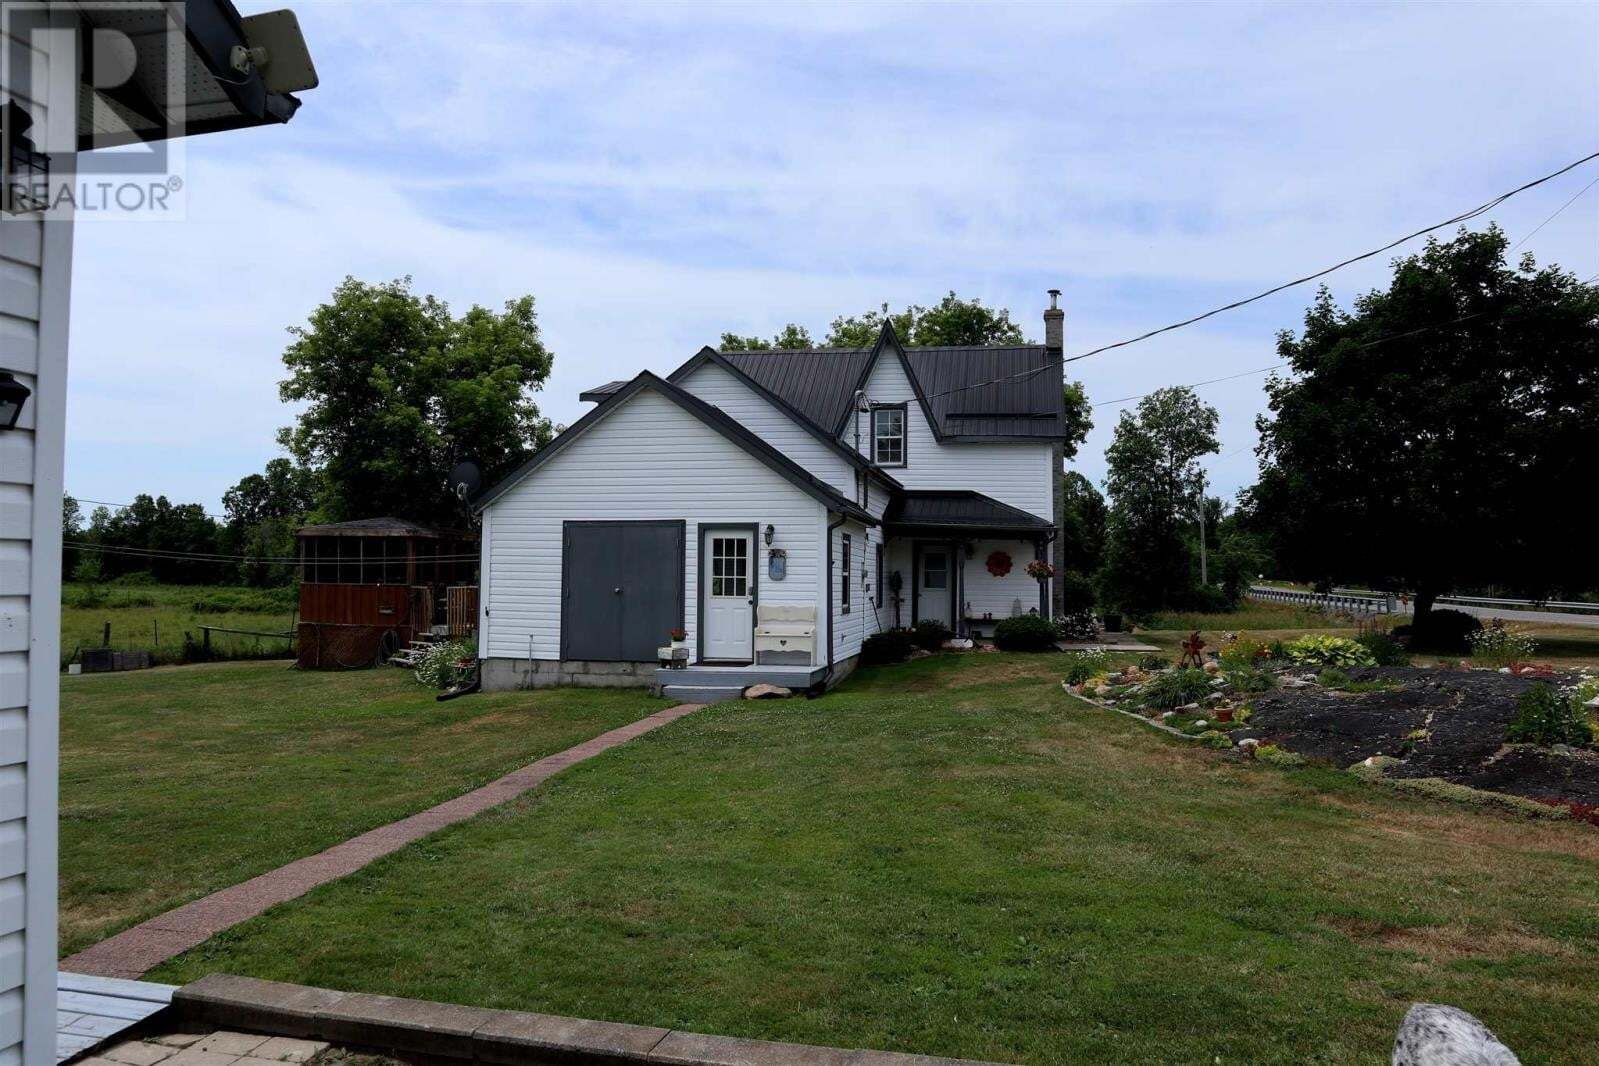 House for sale at 3920 Bellrock Rd Stone Mills Twp Ontario - MLS: K20001479